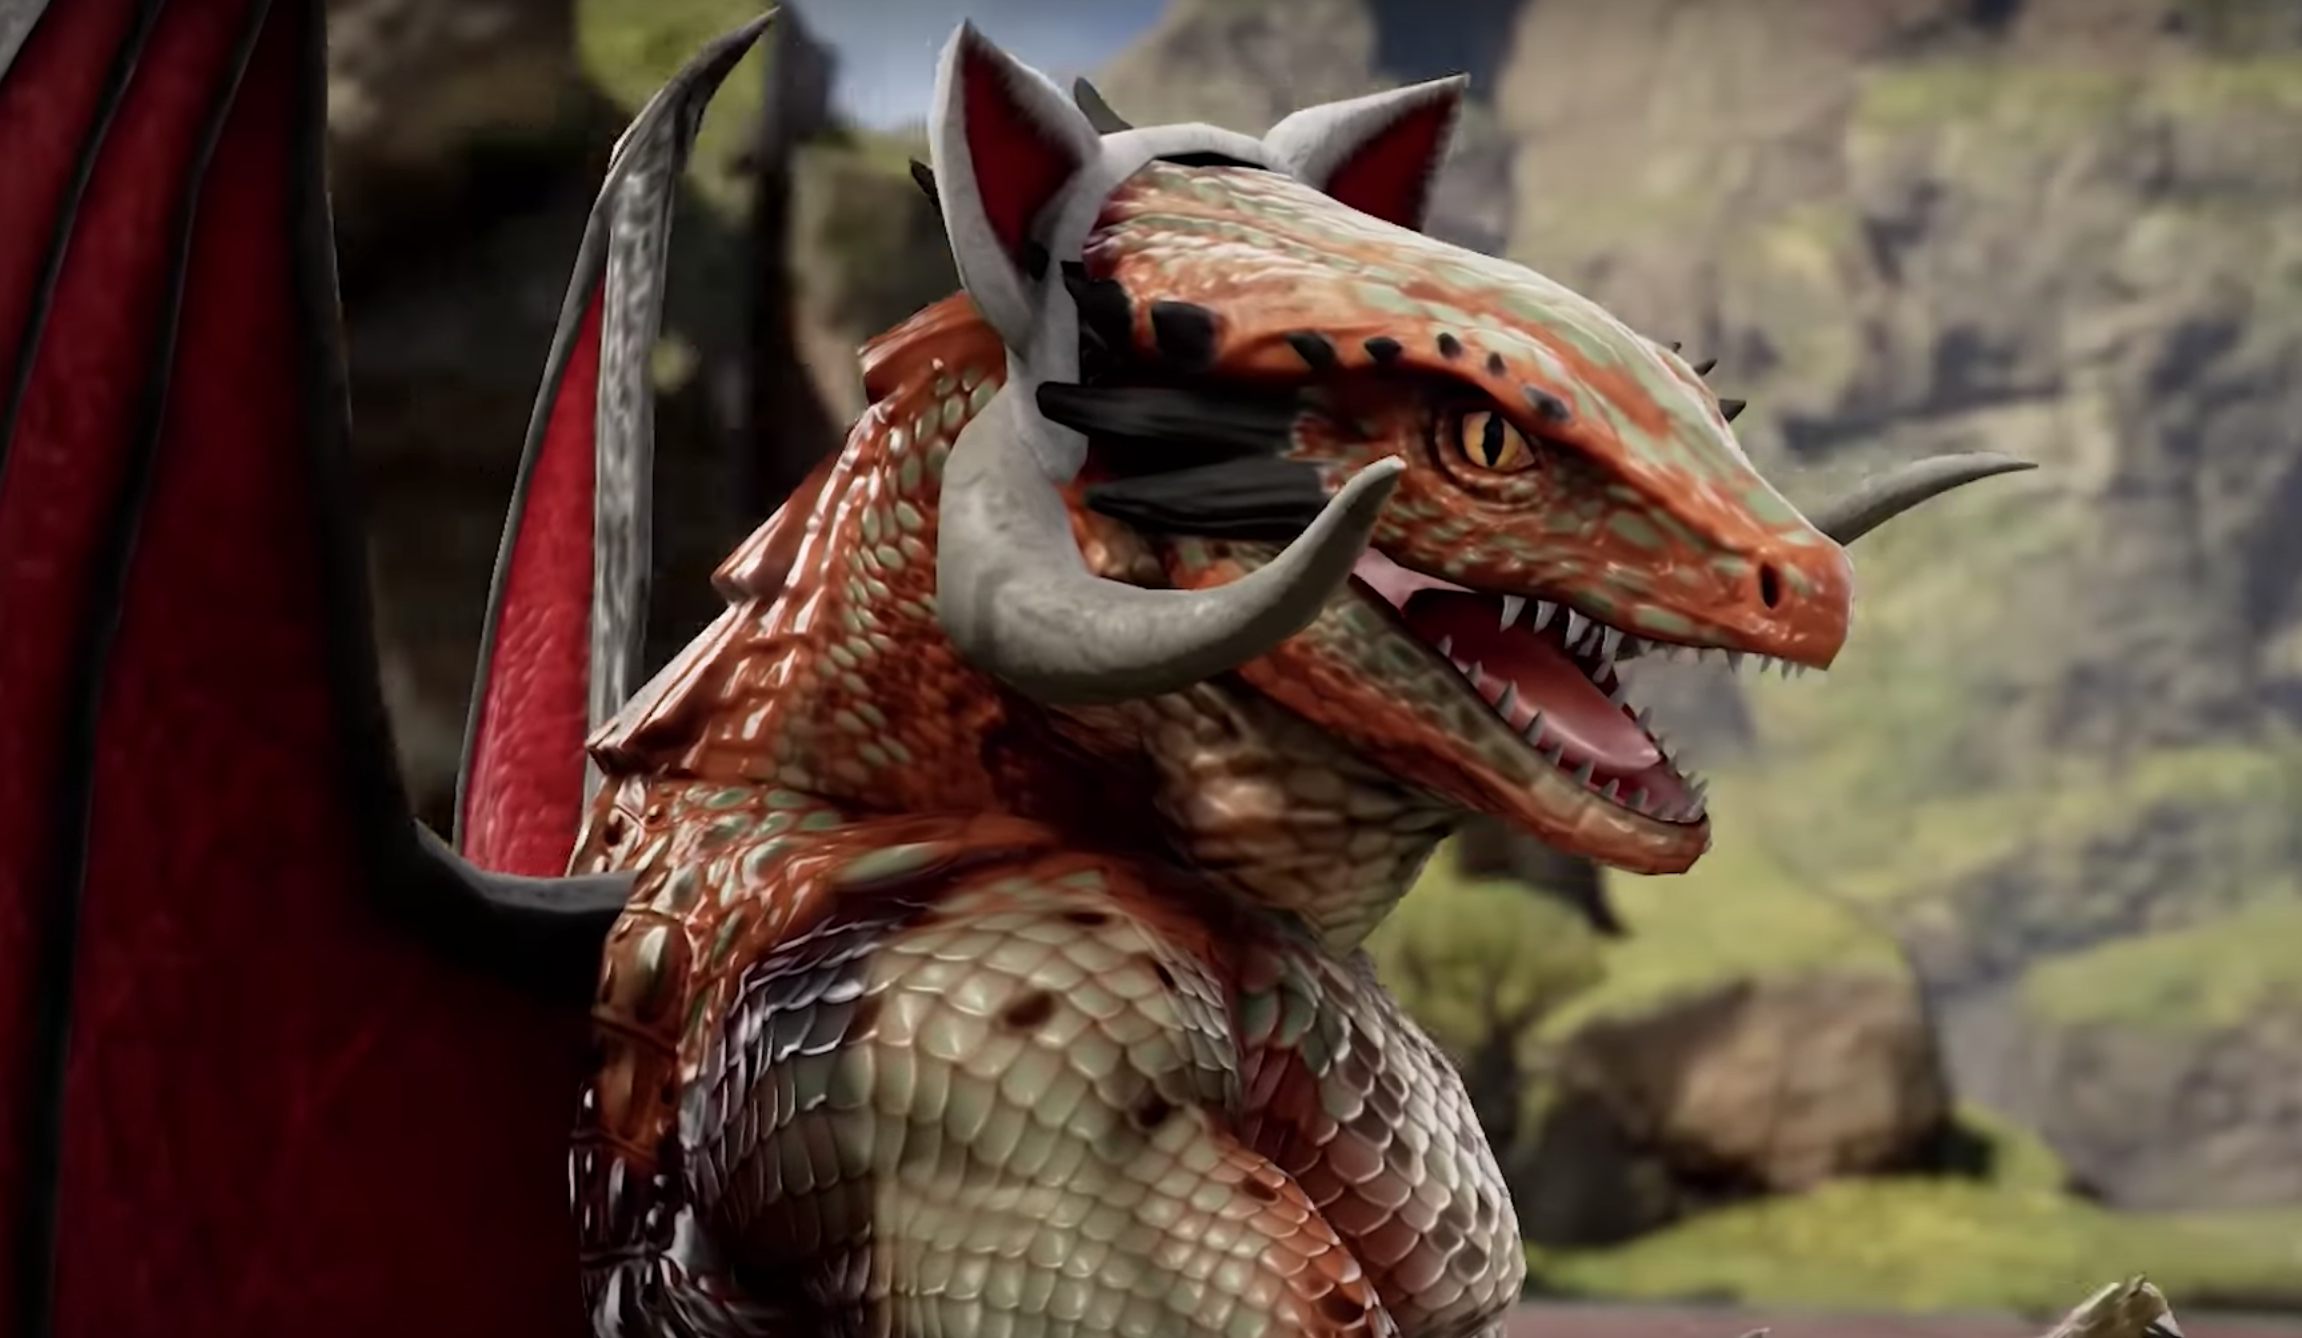 The Soulcalibur 6 community designed its own character and